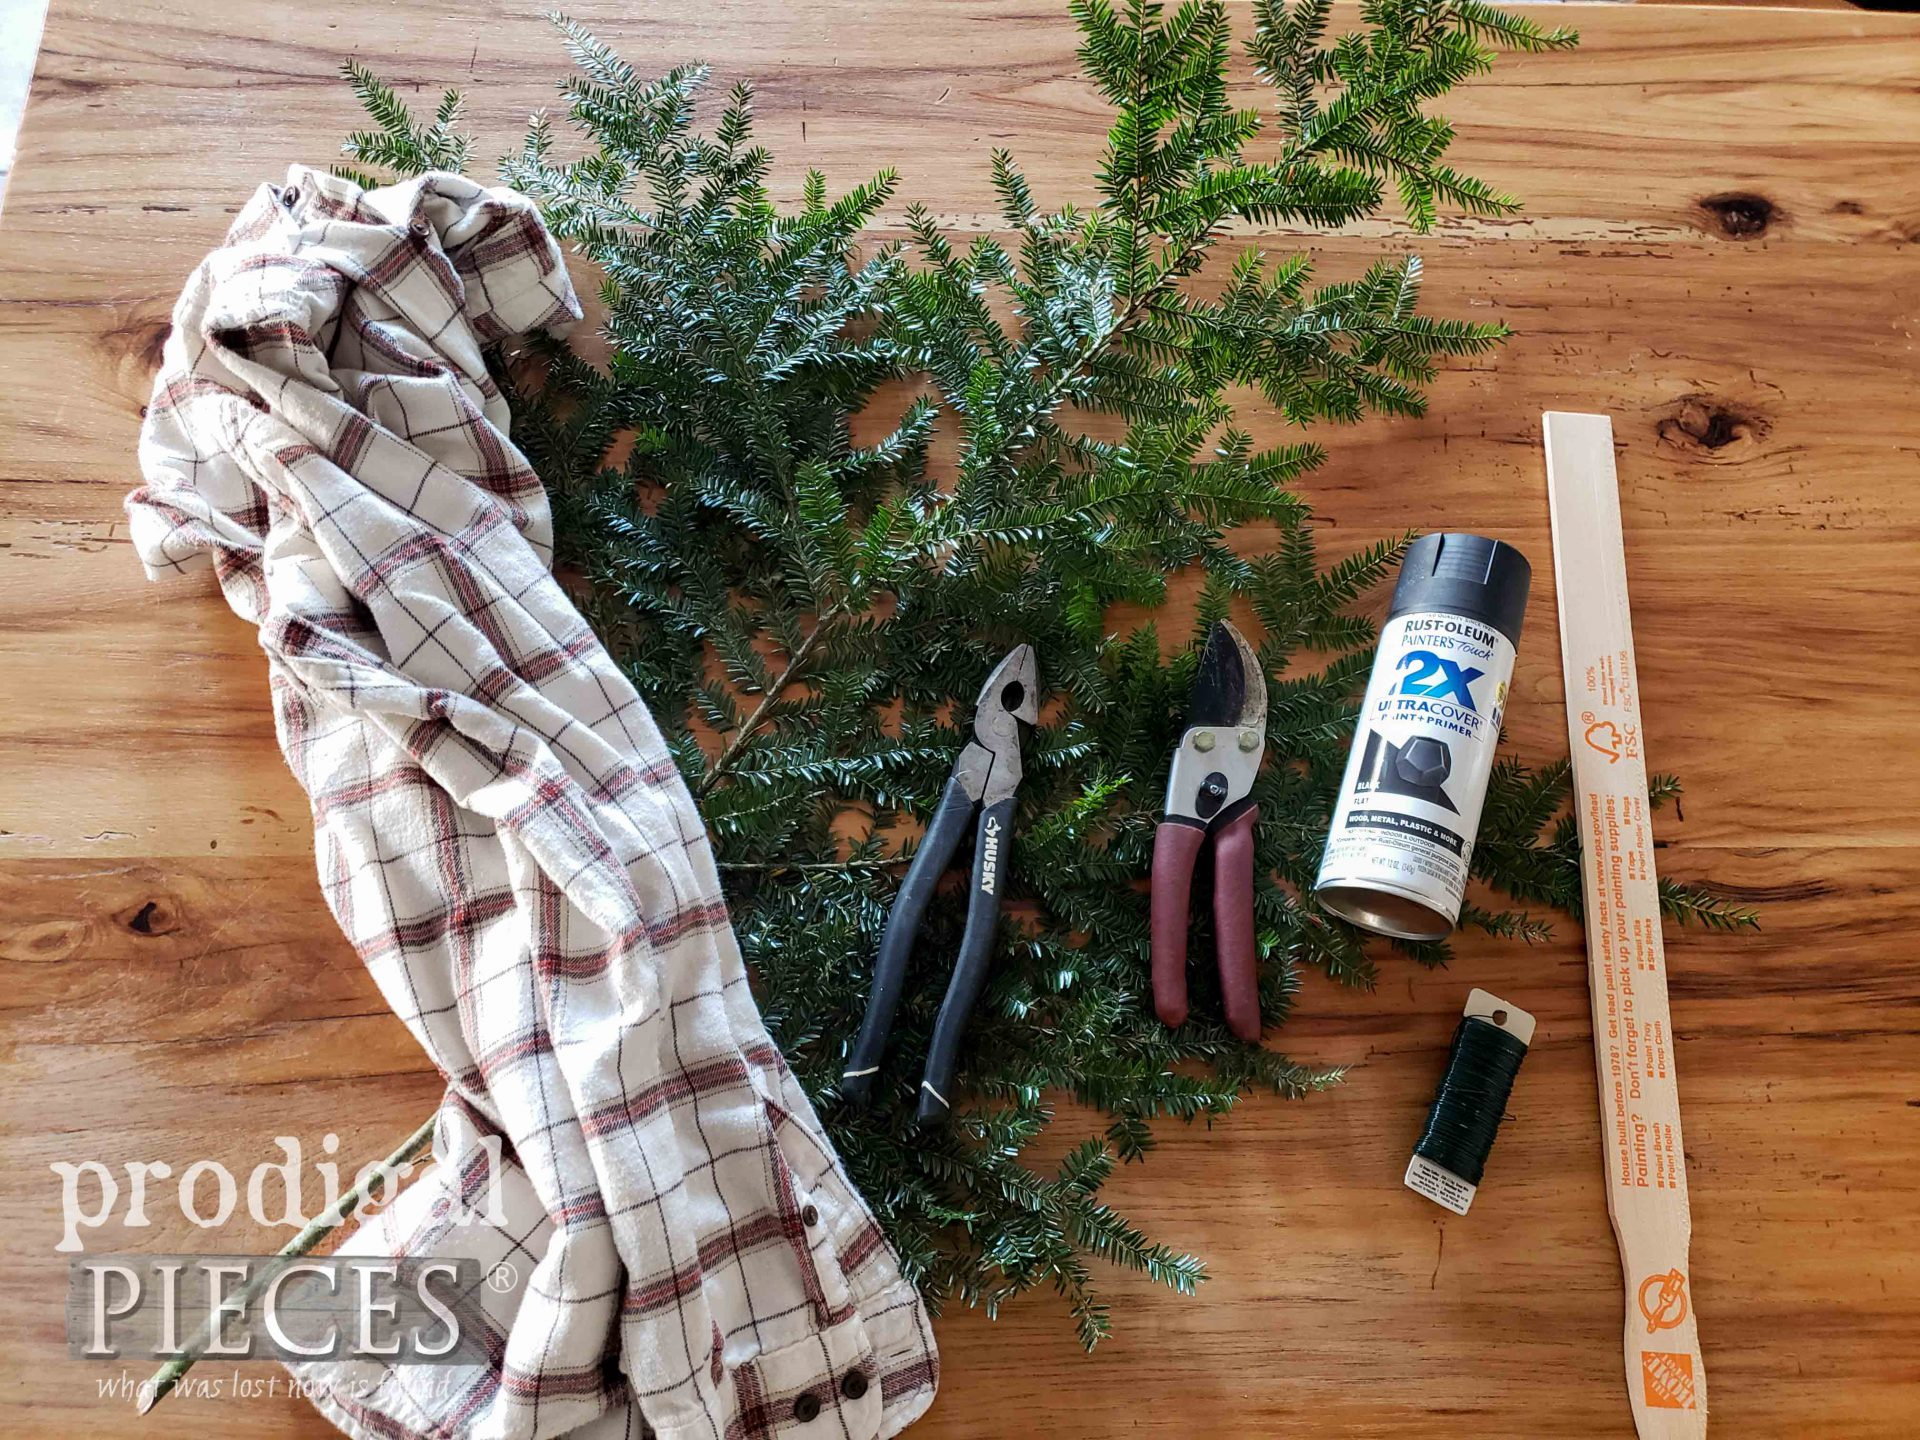 DIY Christmas Swag Supplies & Tools | prodigalpieces.com #prodigalpieces